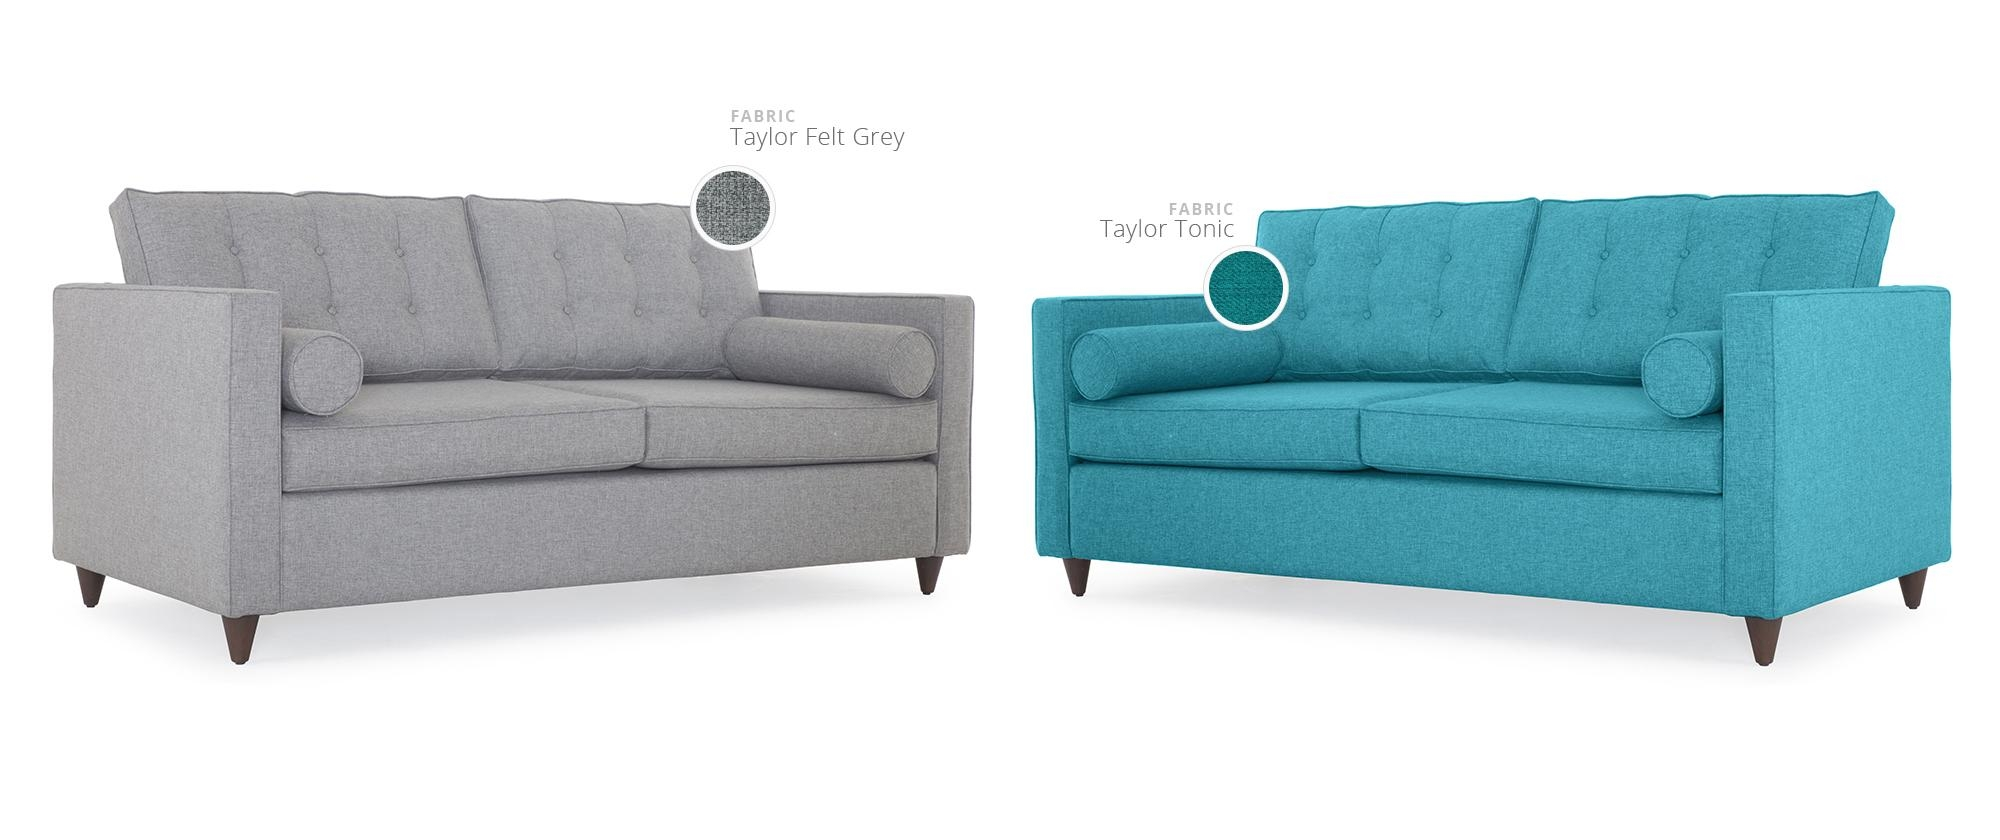 Braxton Sleeper Sofa | Joybird Pertaining To Braxton Sofa (Image 11 of 20)